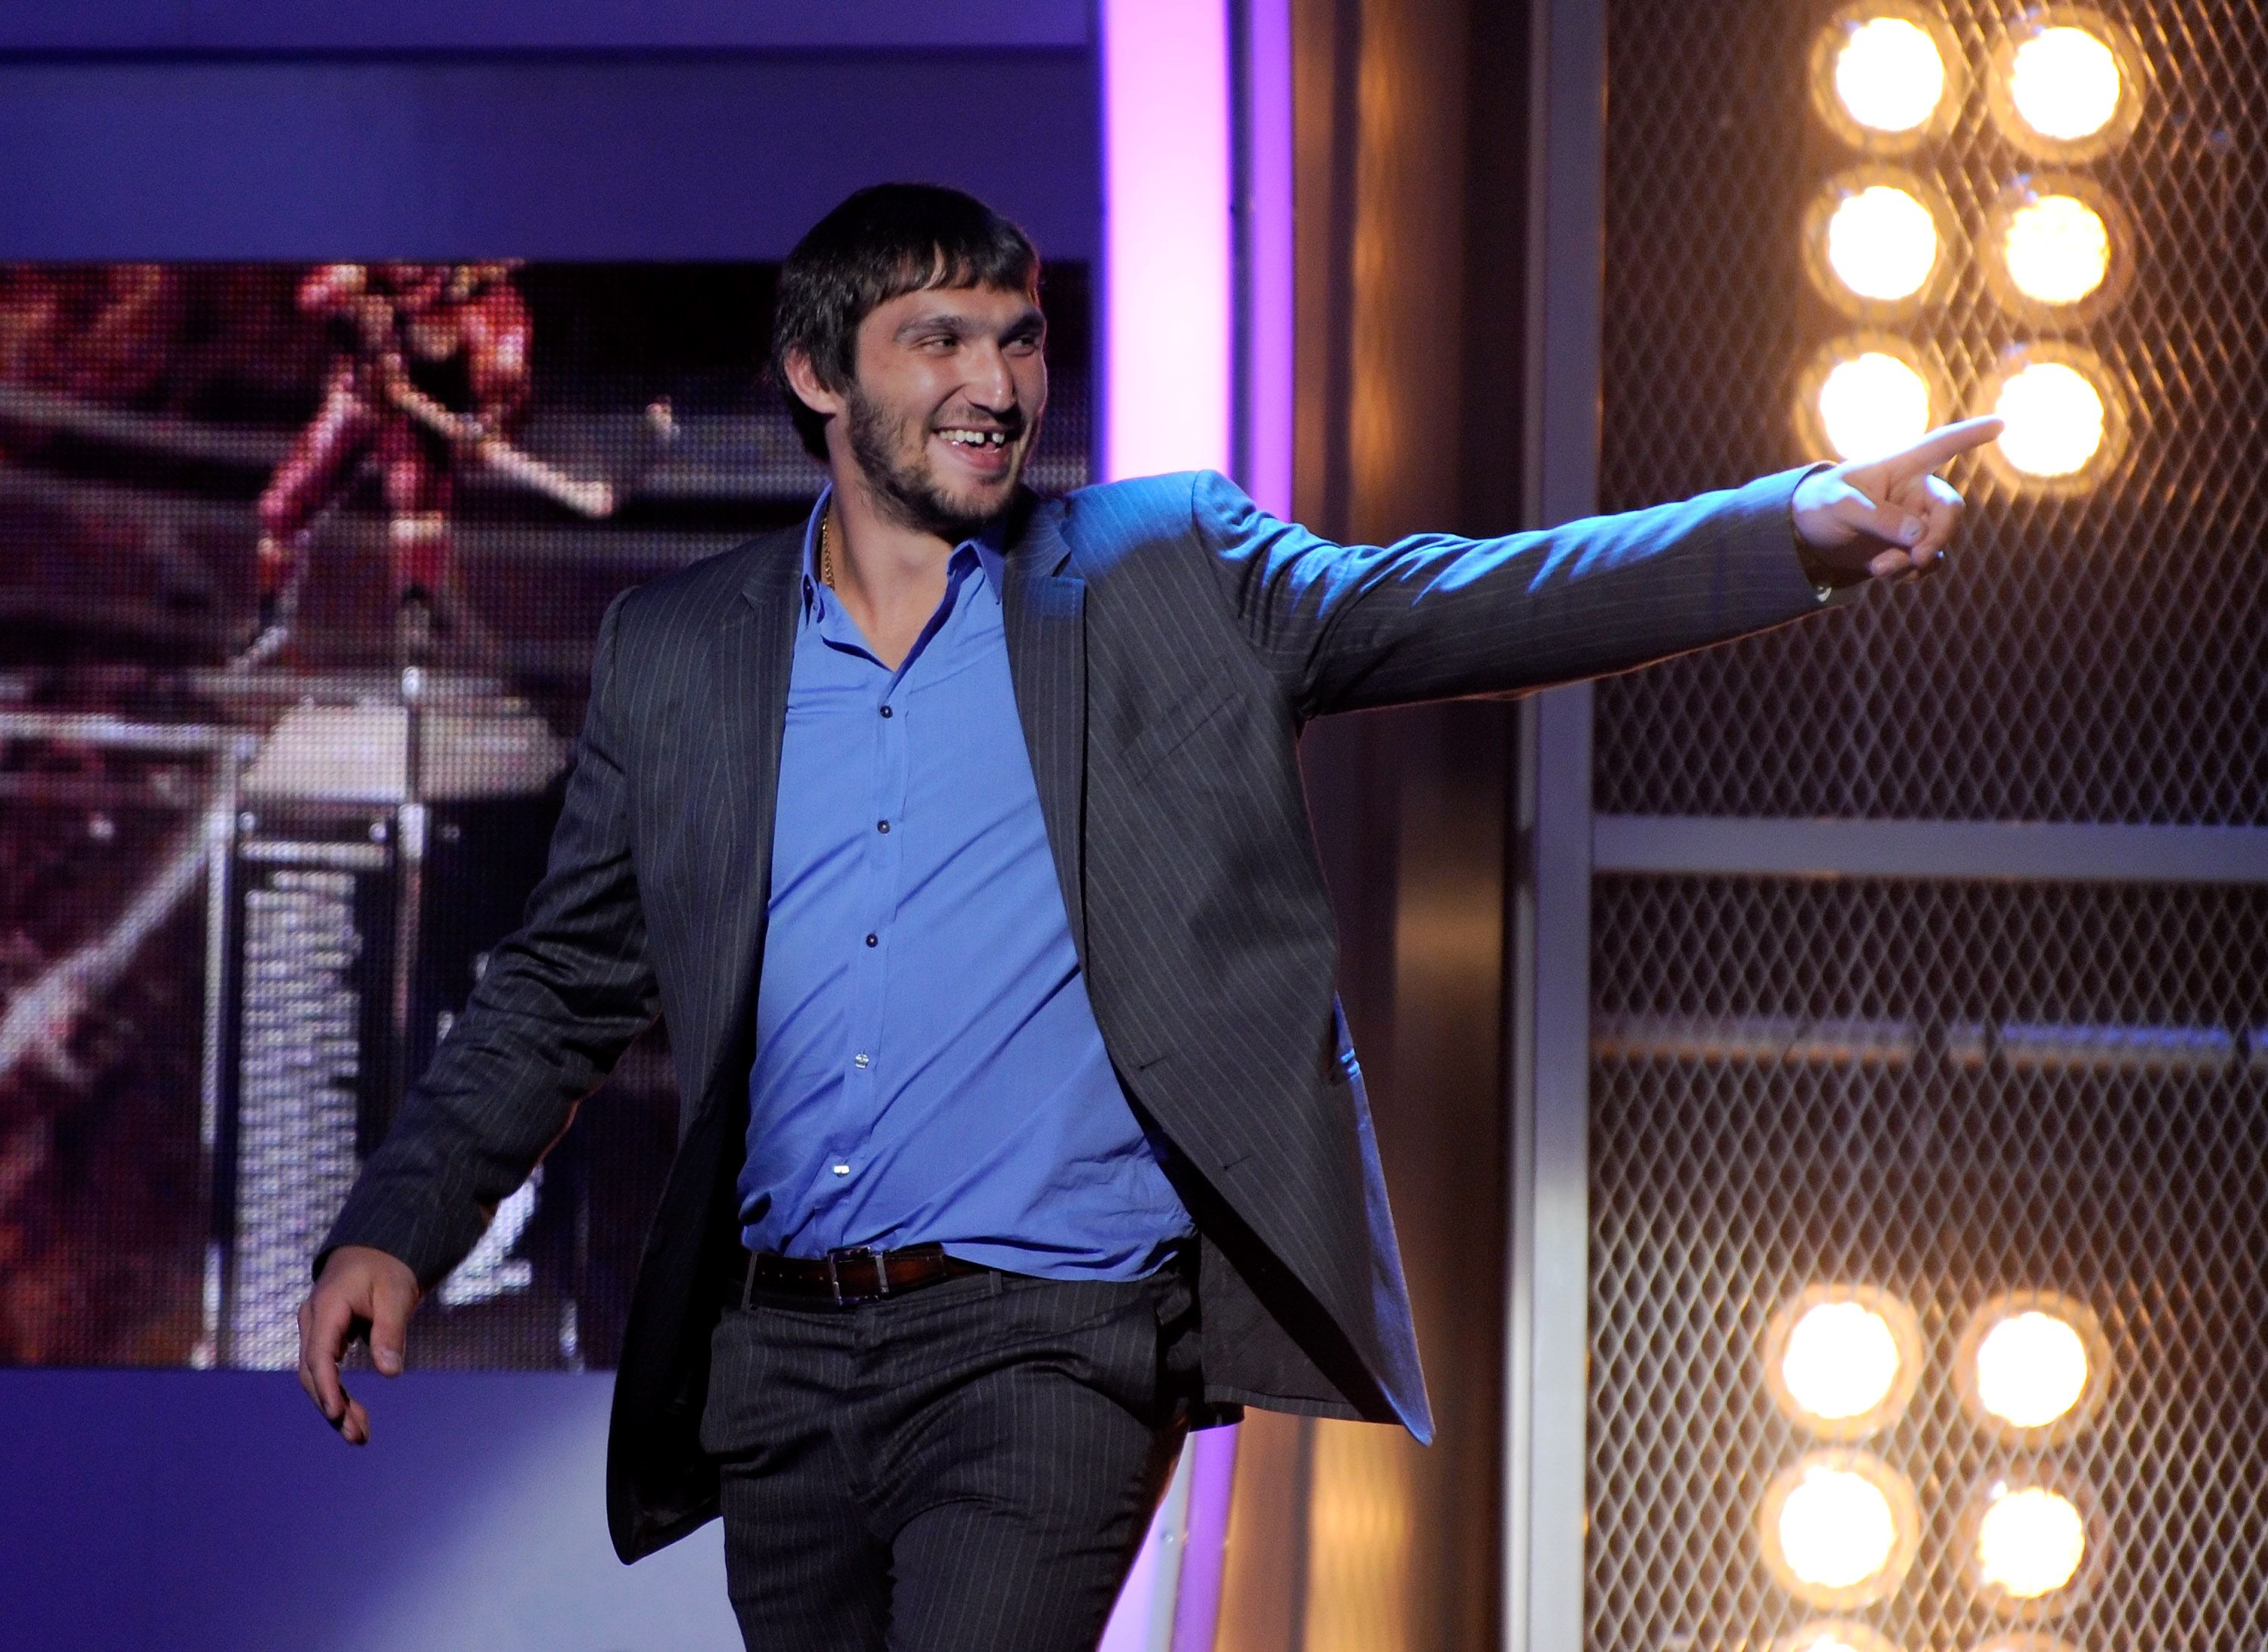 LAS VEGAS - JUNE 23:  Alex Ovechkin of the Washington Capitals accepts the Ted Lindsay Award during the 2010 NHL Awards at The Pearl concert theater at the Palms Casino Resort June 23, 2010 in Las Vegas, Nevada.  (Photo by Ethan Miller/Getty Images for NH